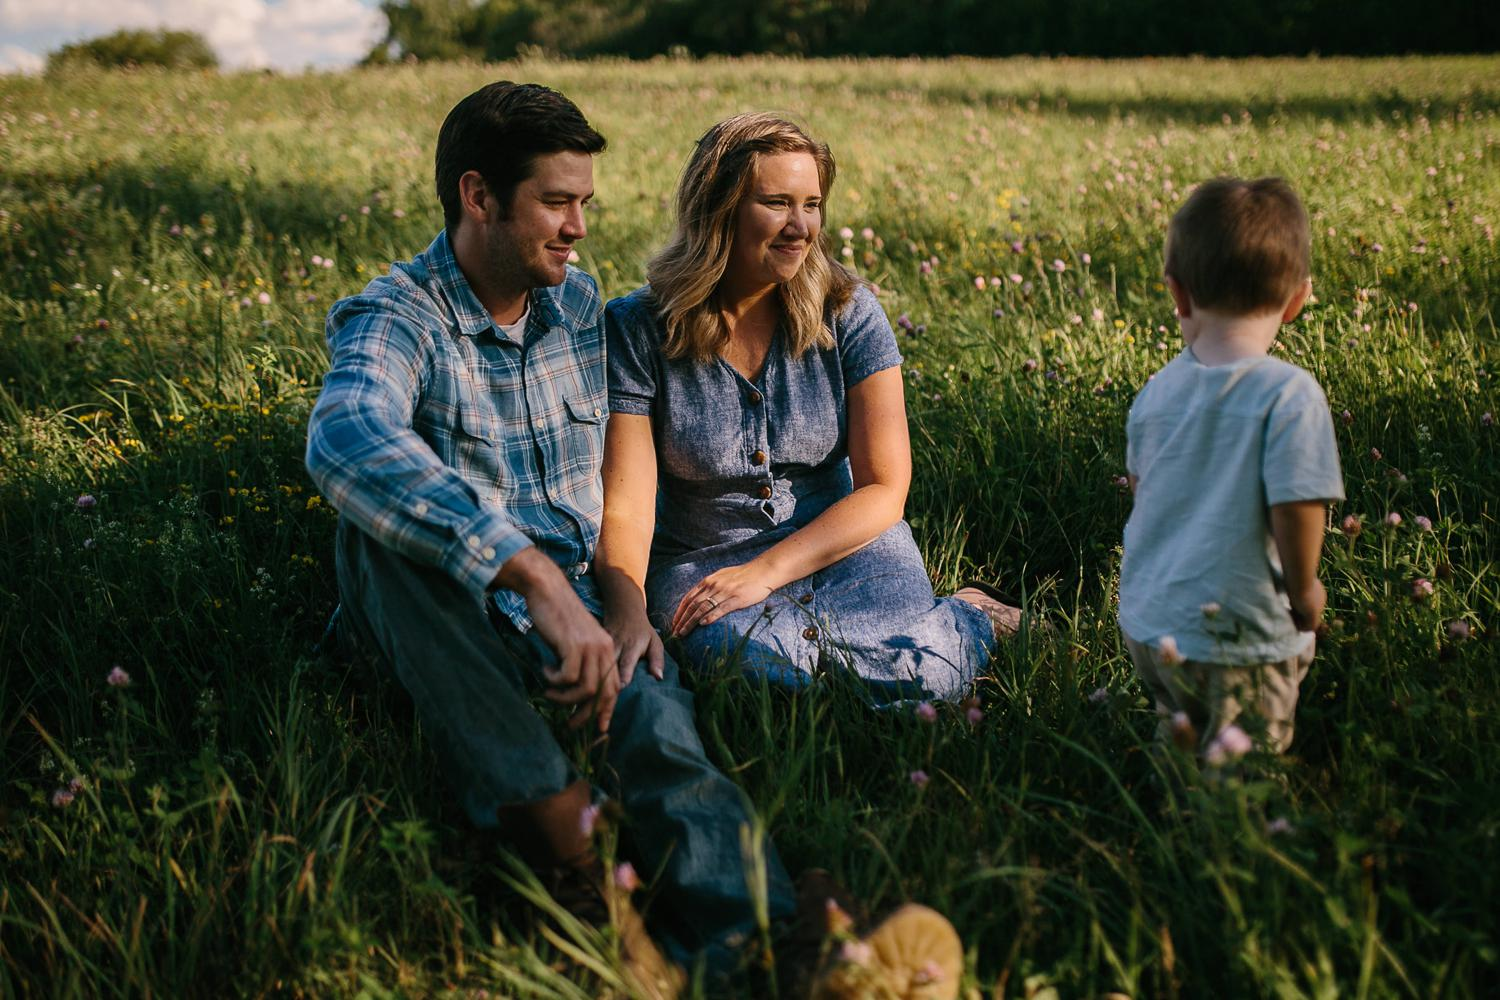 perth lanark county family outdoor photographer - kerry ford photography-028.jpg